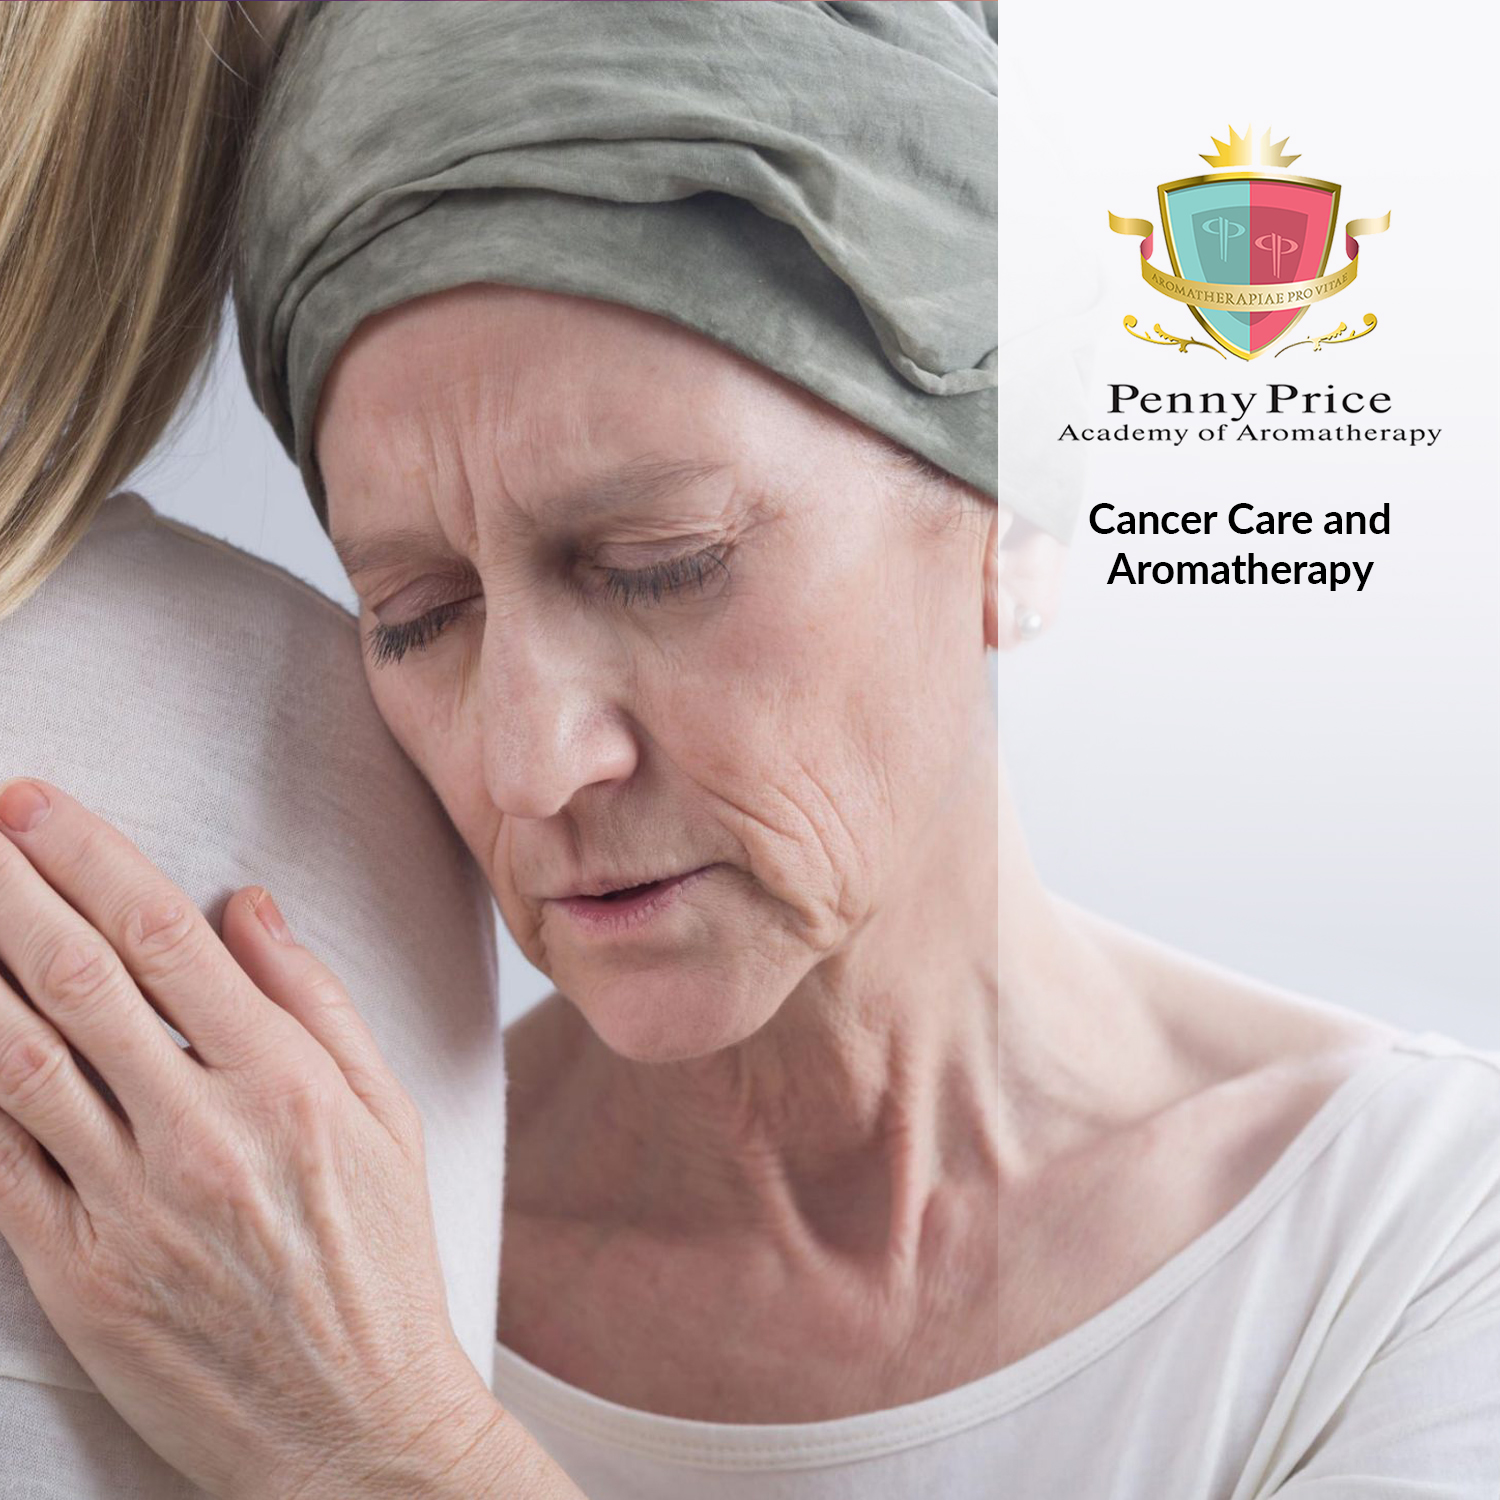 aromatherapy_course_cancer_care_and_aromatherapy